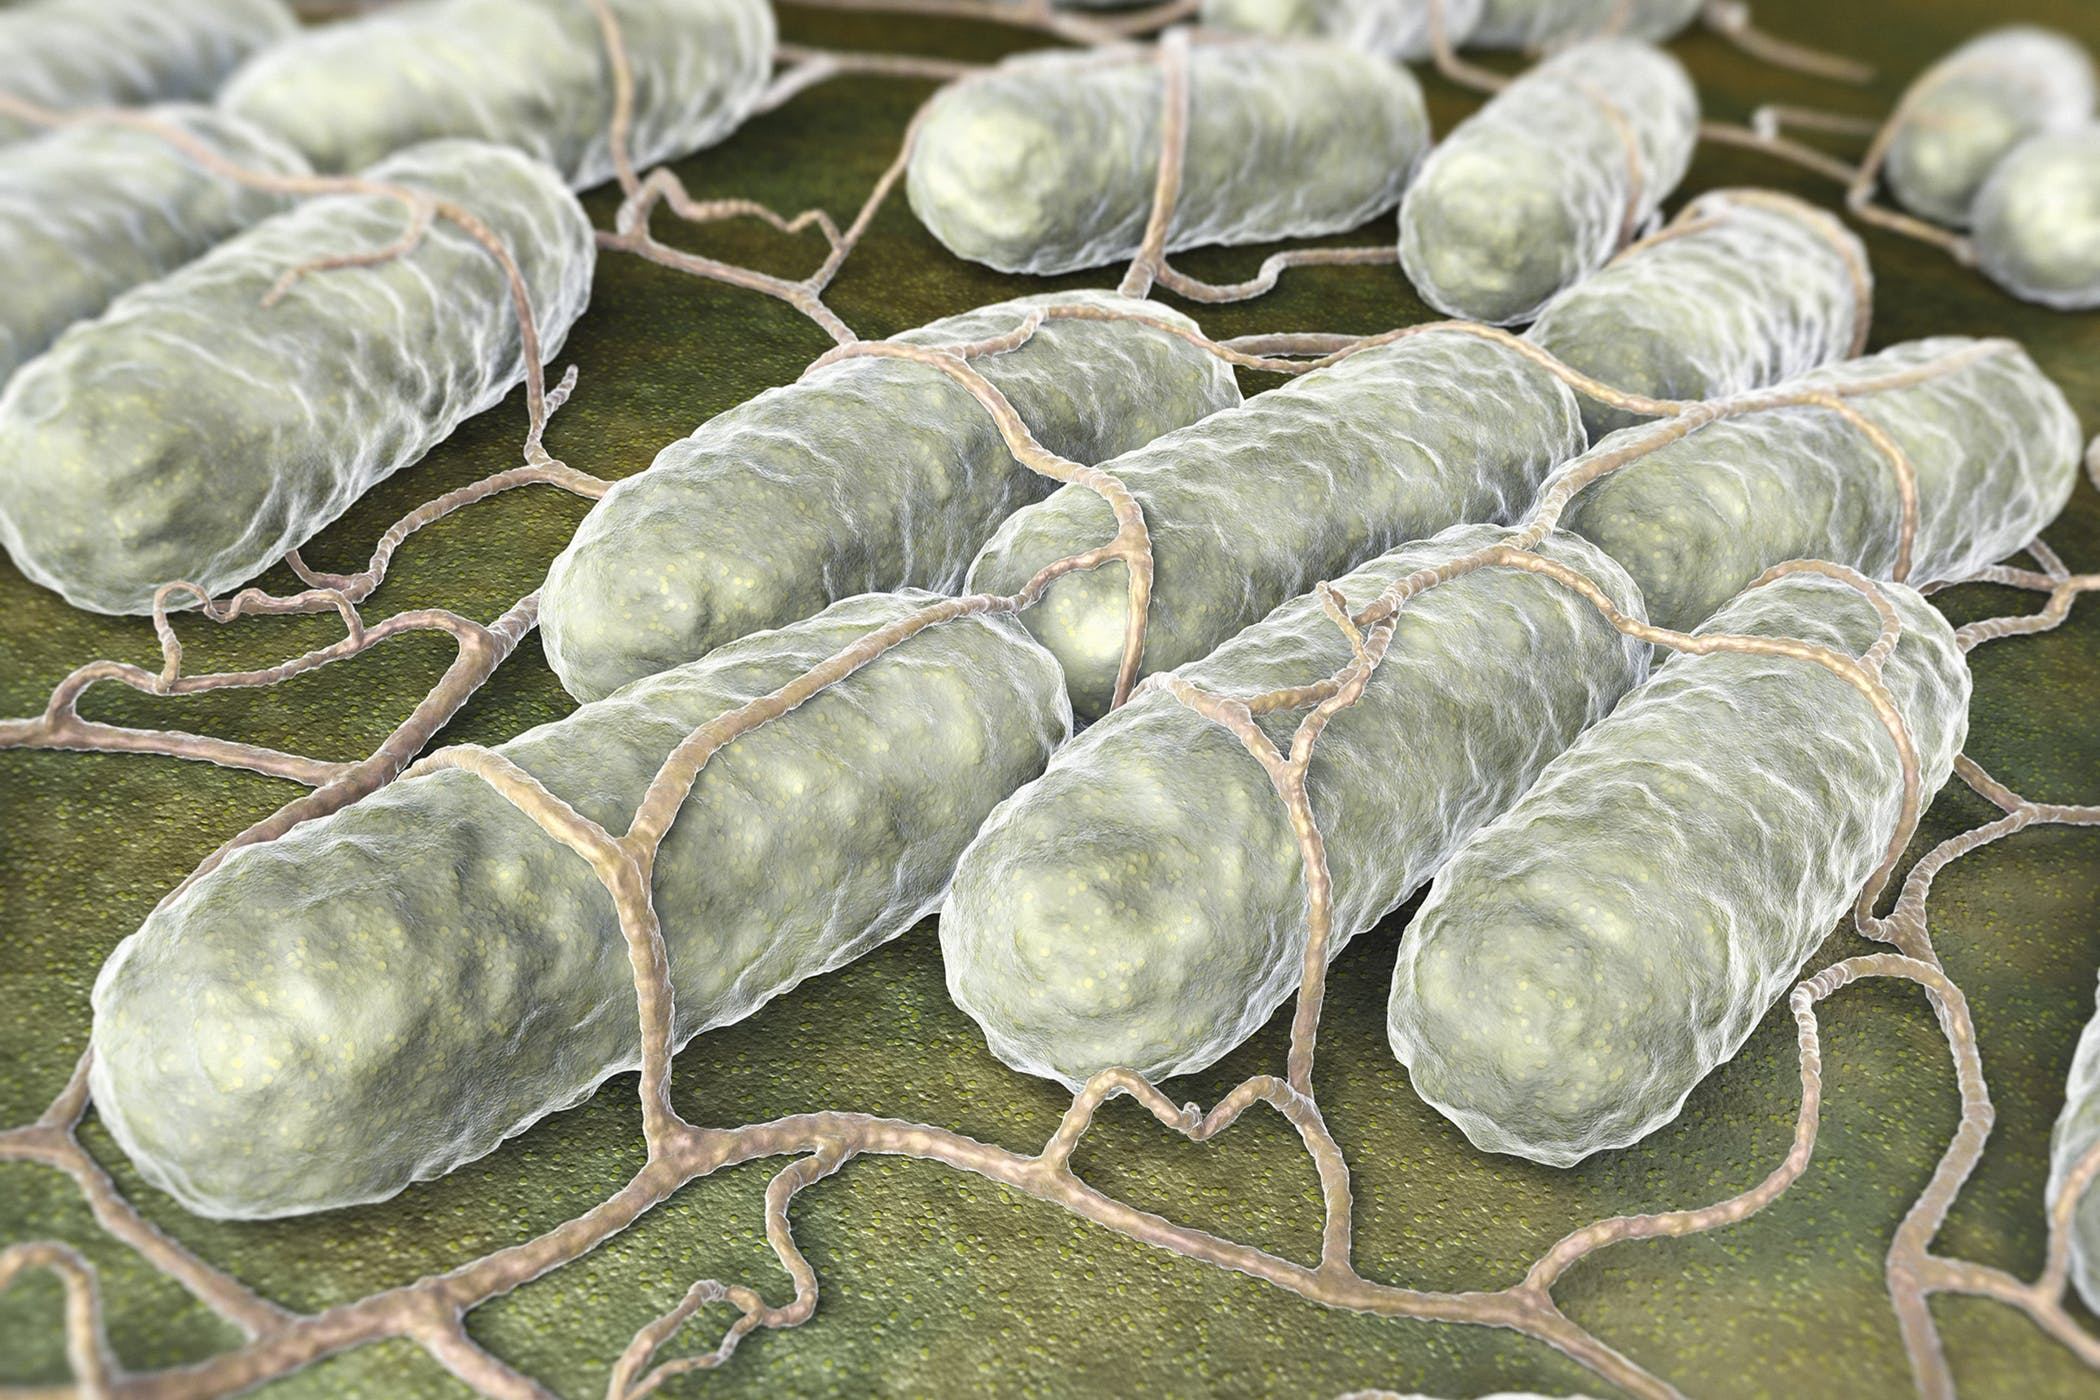 Salmonella In Horses Symptoms Causes Diagnosis Treatment Recovery Management Cost